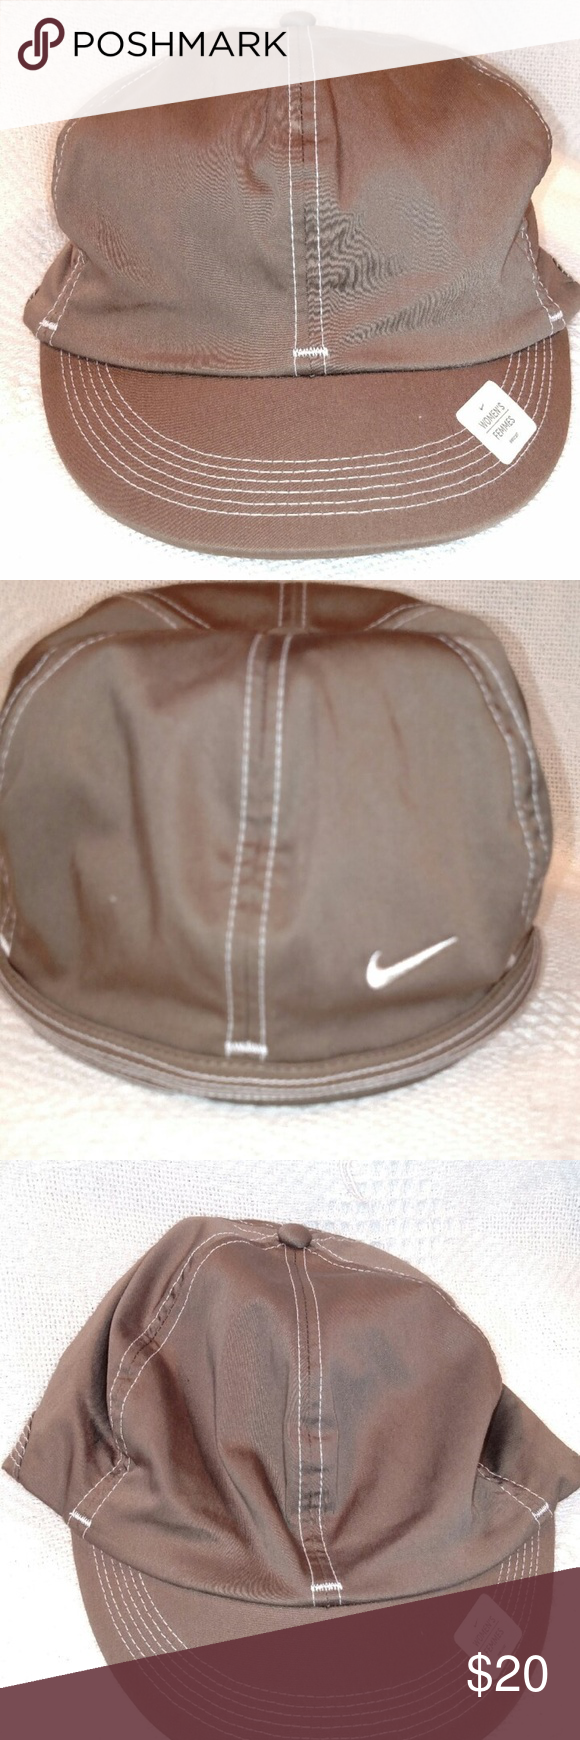 126f87caf2a Nike Wmns Fitted Dri-Fit Golf Cap Khaki-S M NWT Brand New with tags. 100%  Authentic NIKE Product. Women s